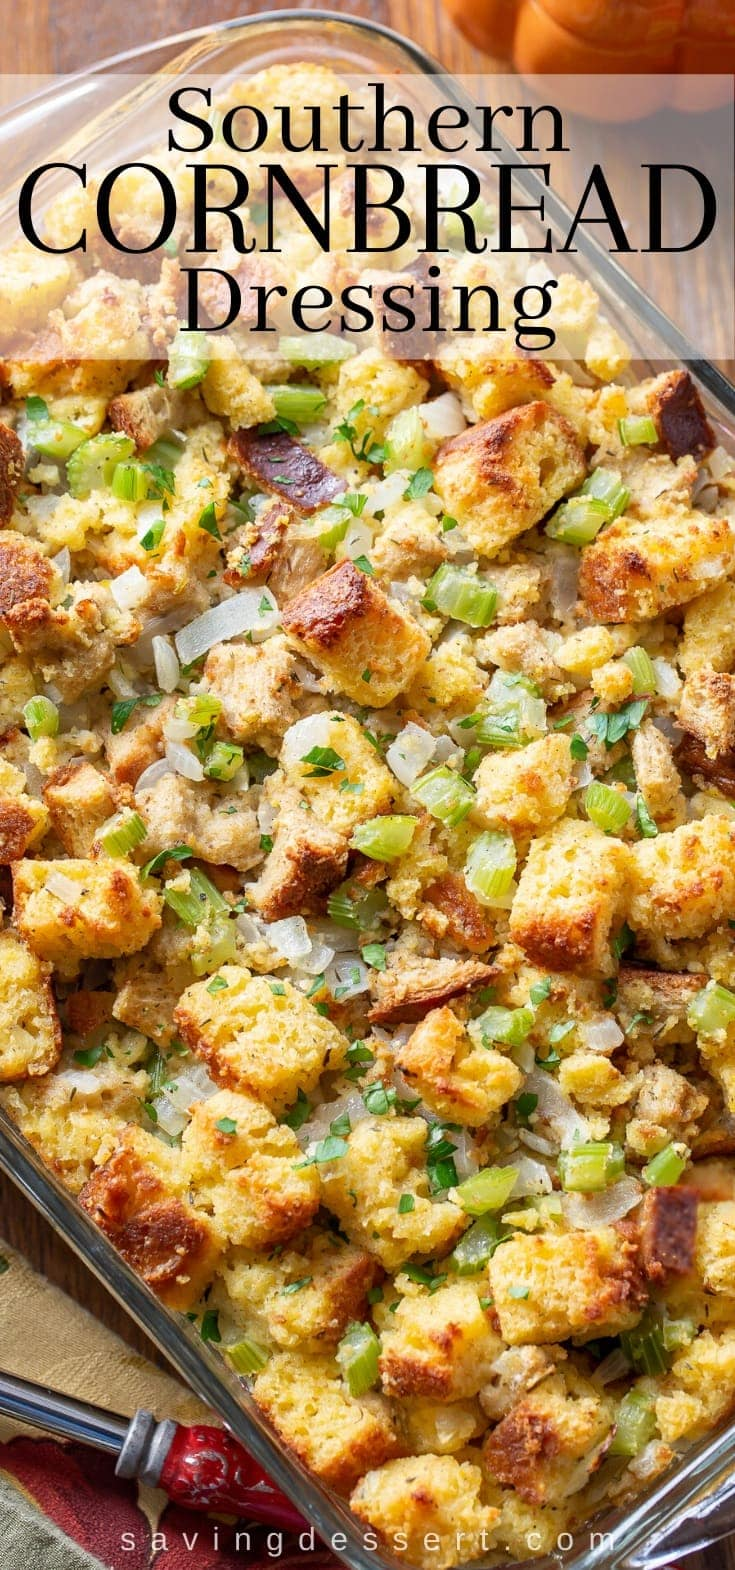 A casserole with Southern Cornbread Dressing